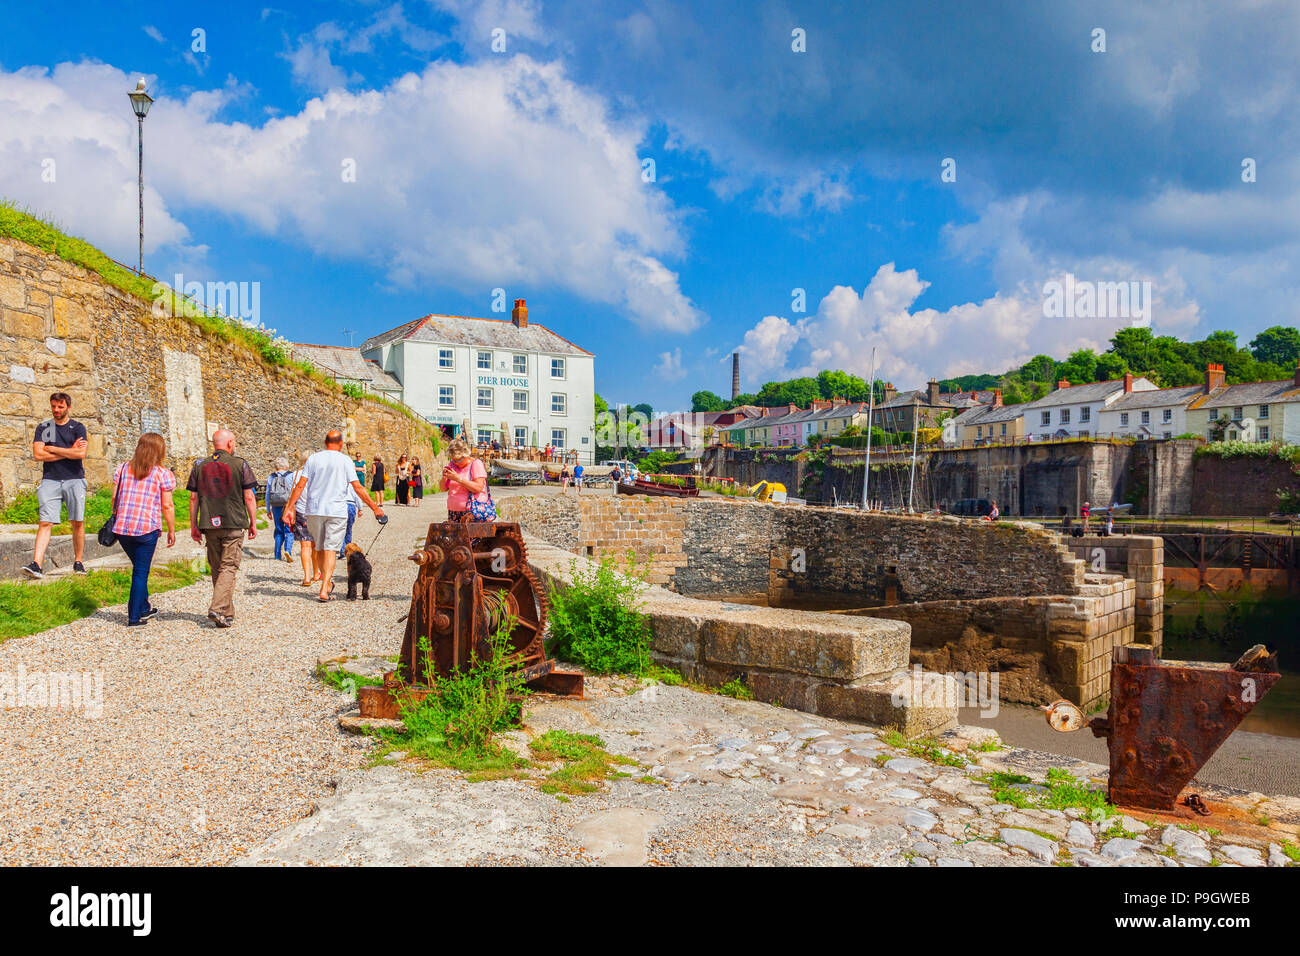 11 June 2018: Charlestown, Cornwall, UK - Visitors at Charlestown, an unspoiled example of a Georgian working port, it was built betweel 1791 and 1801 - Stock Image